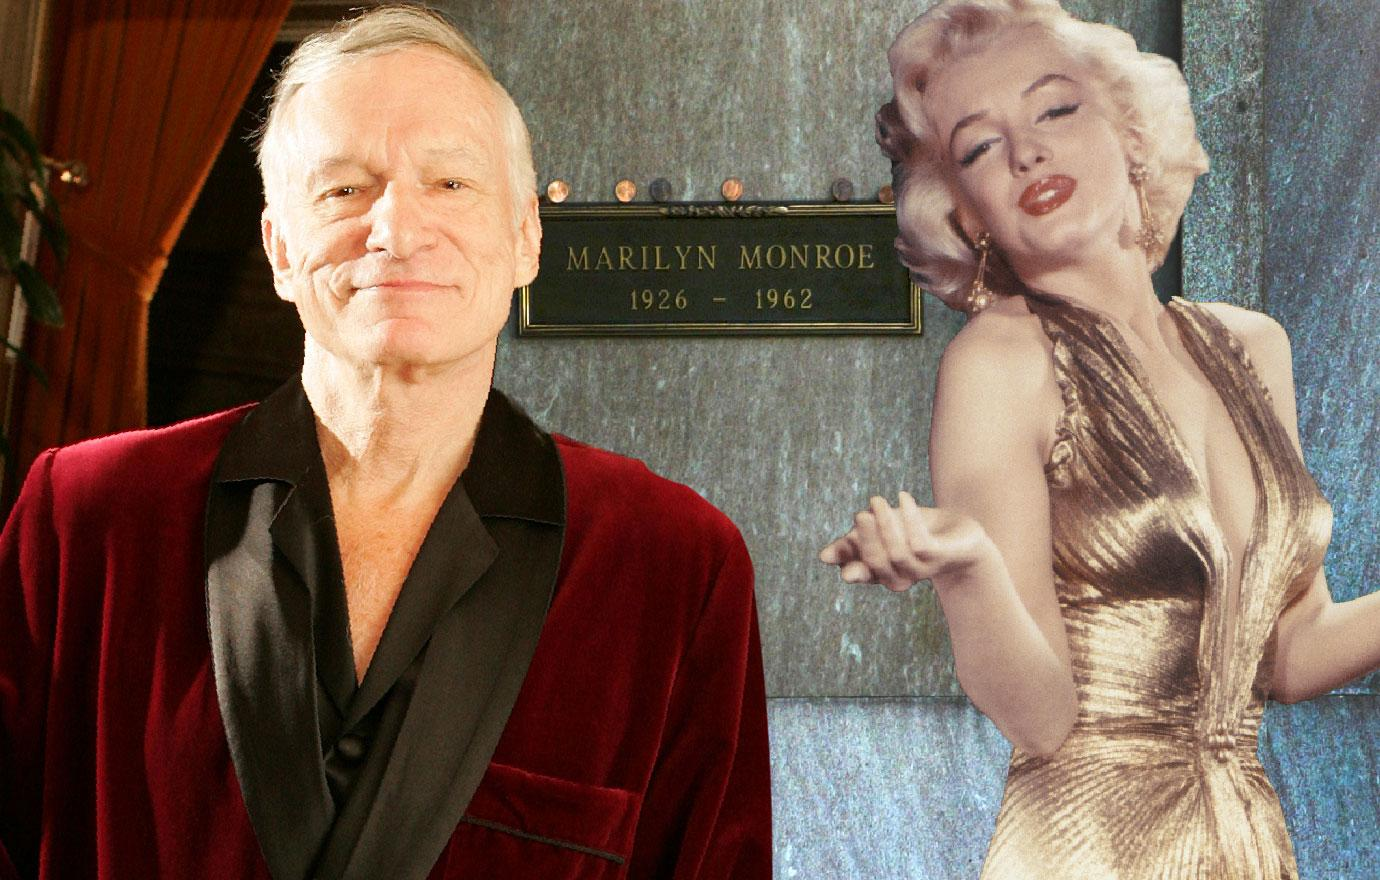 Hugh Hefner Laid To Rest Next To Marilyn Monroe